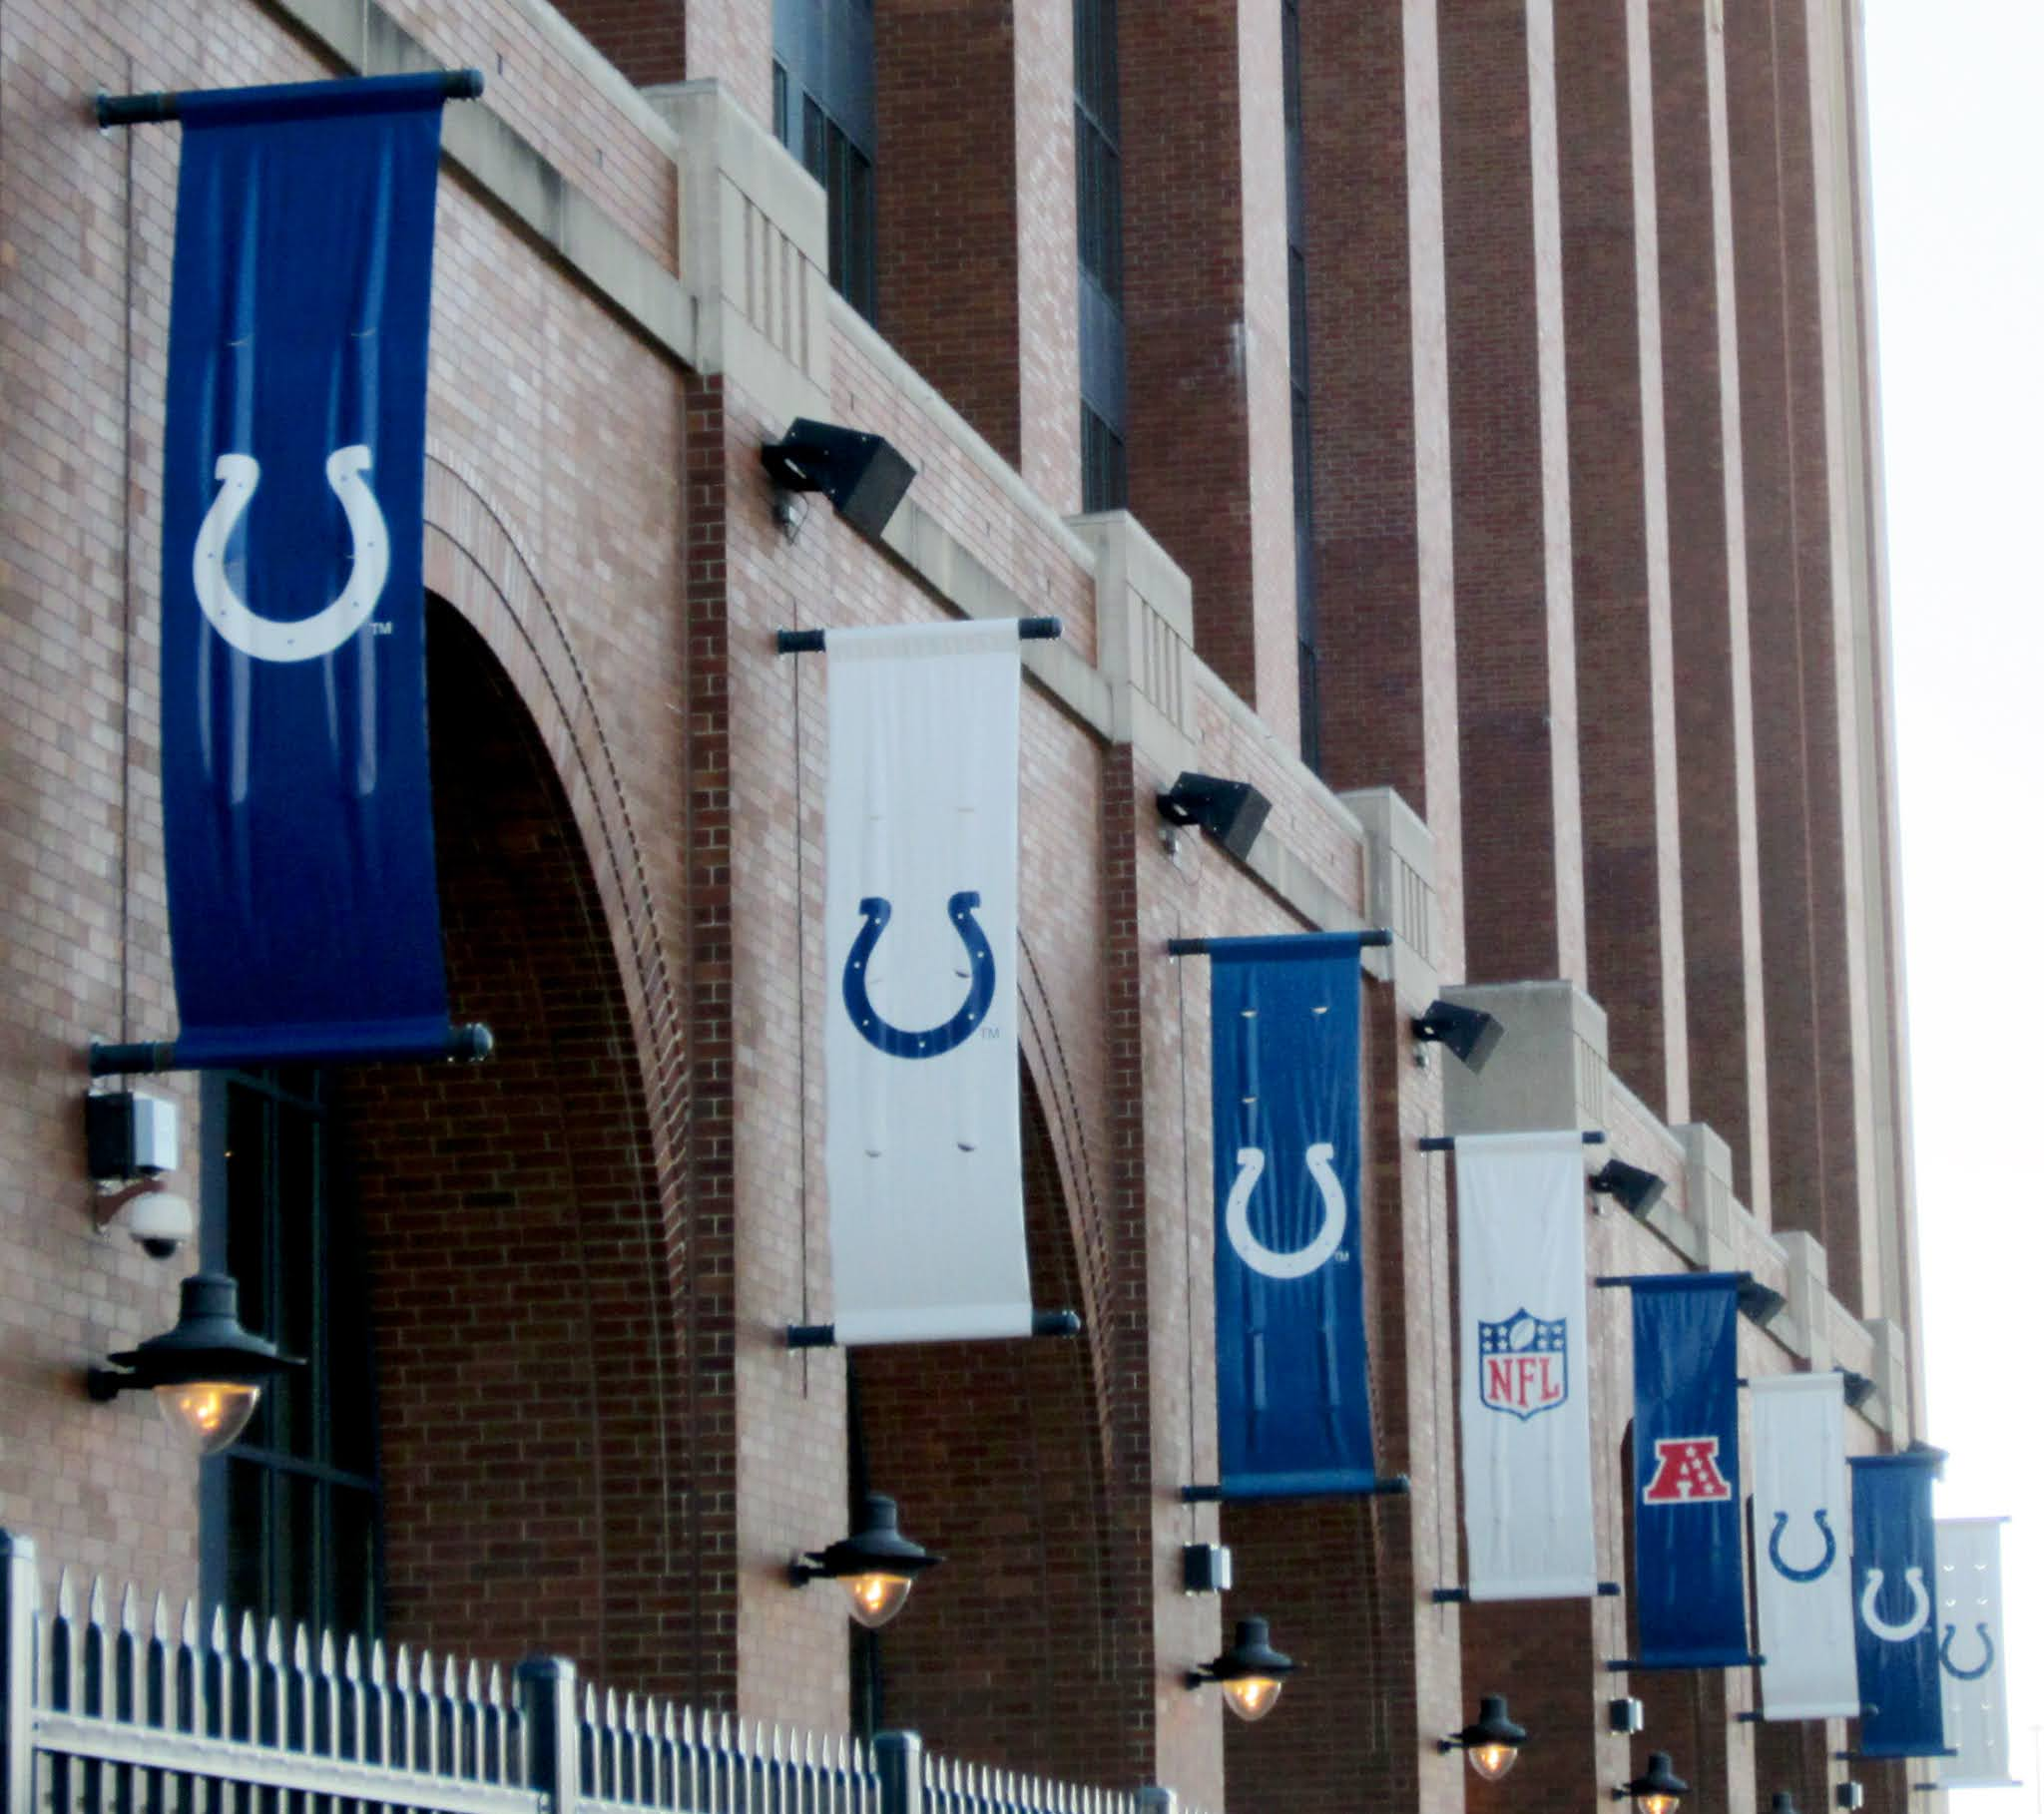 Indianapolis Colts flags outside Lucas Oil Stadium